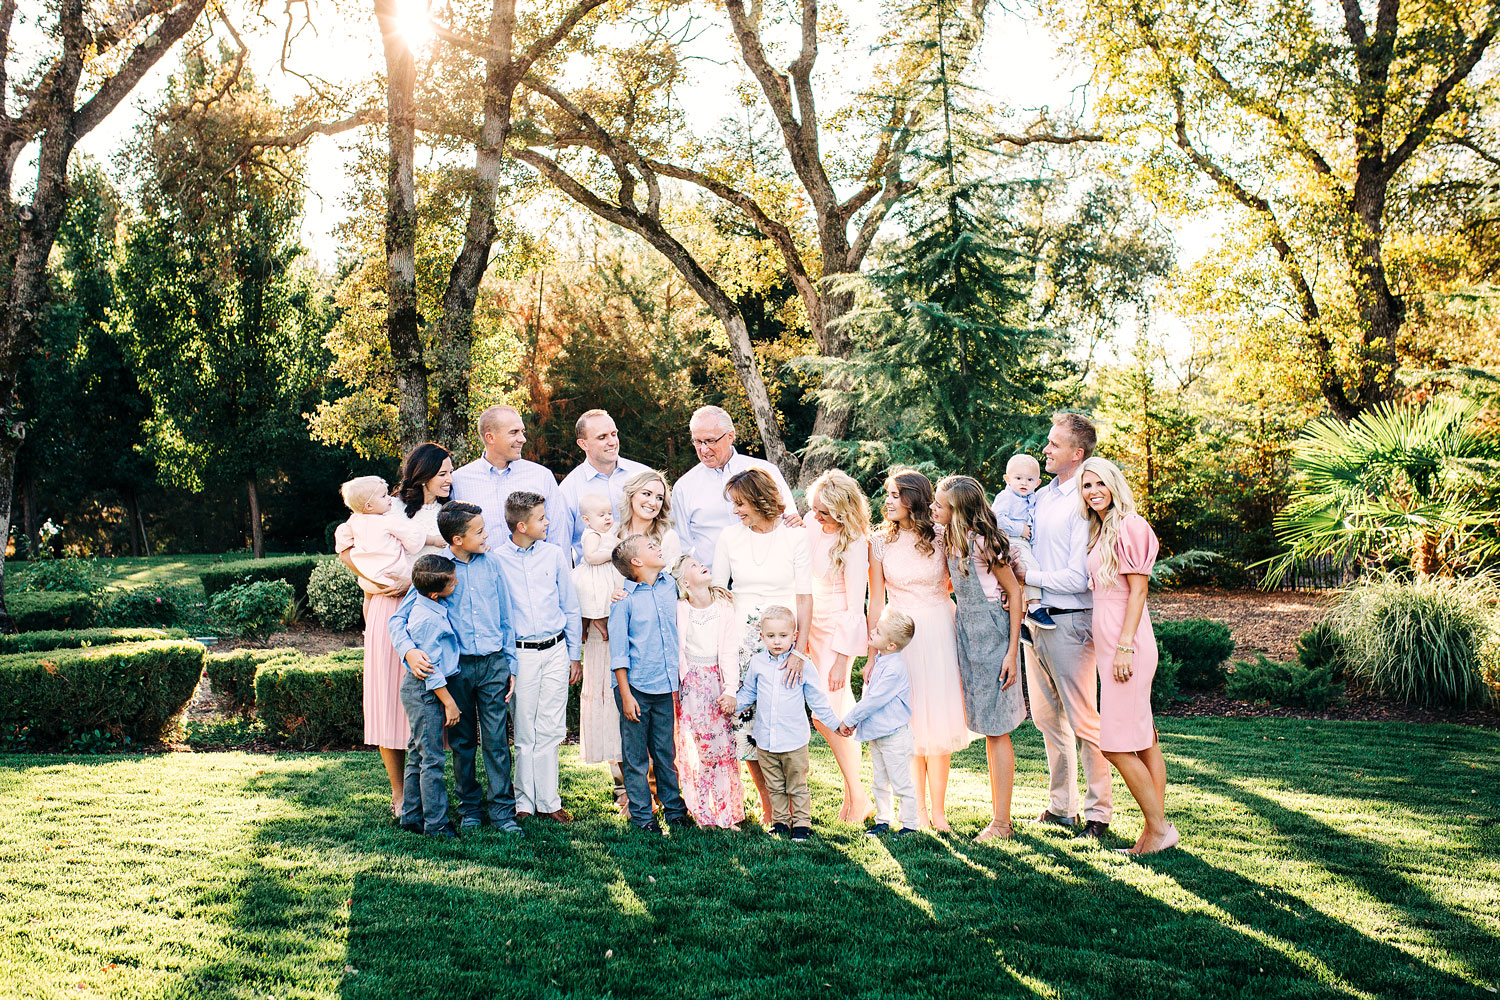 An extended family show love and embrace during their photo session with their photography, Amy Wright Photography, who is based out of Roseville, Rocklin, and Sacramento, California.